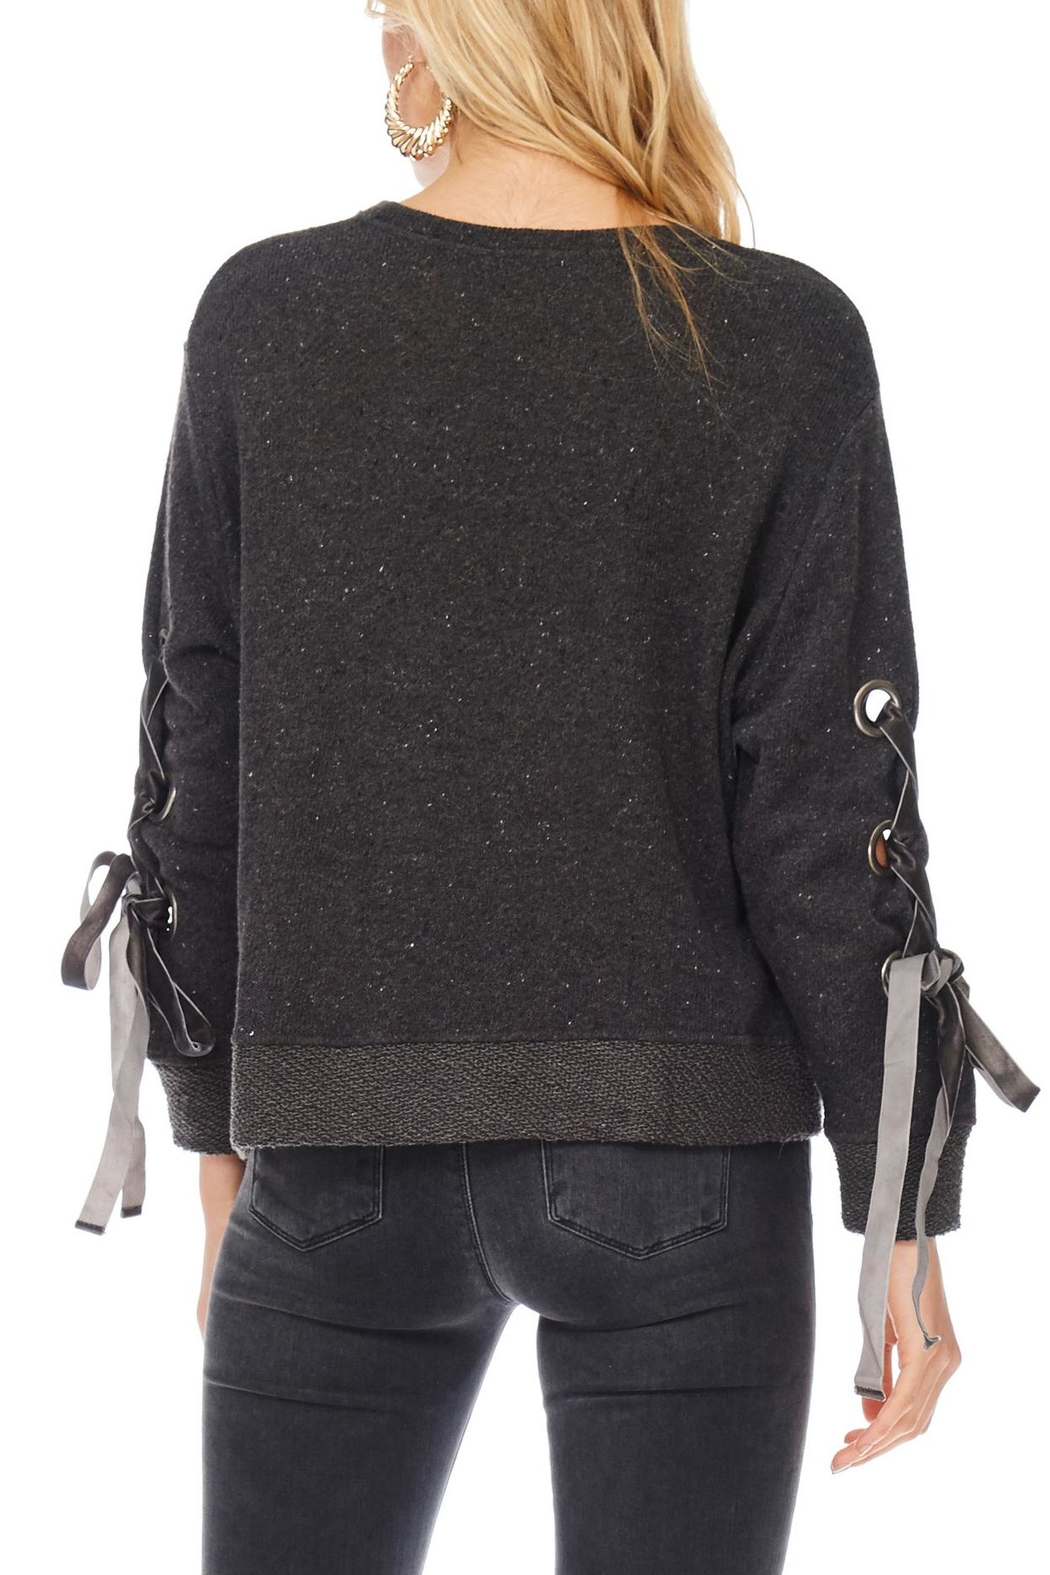 Anama Grommet Sleeve Sweater - Side Cropped Image